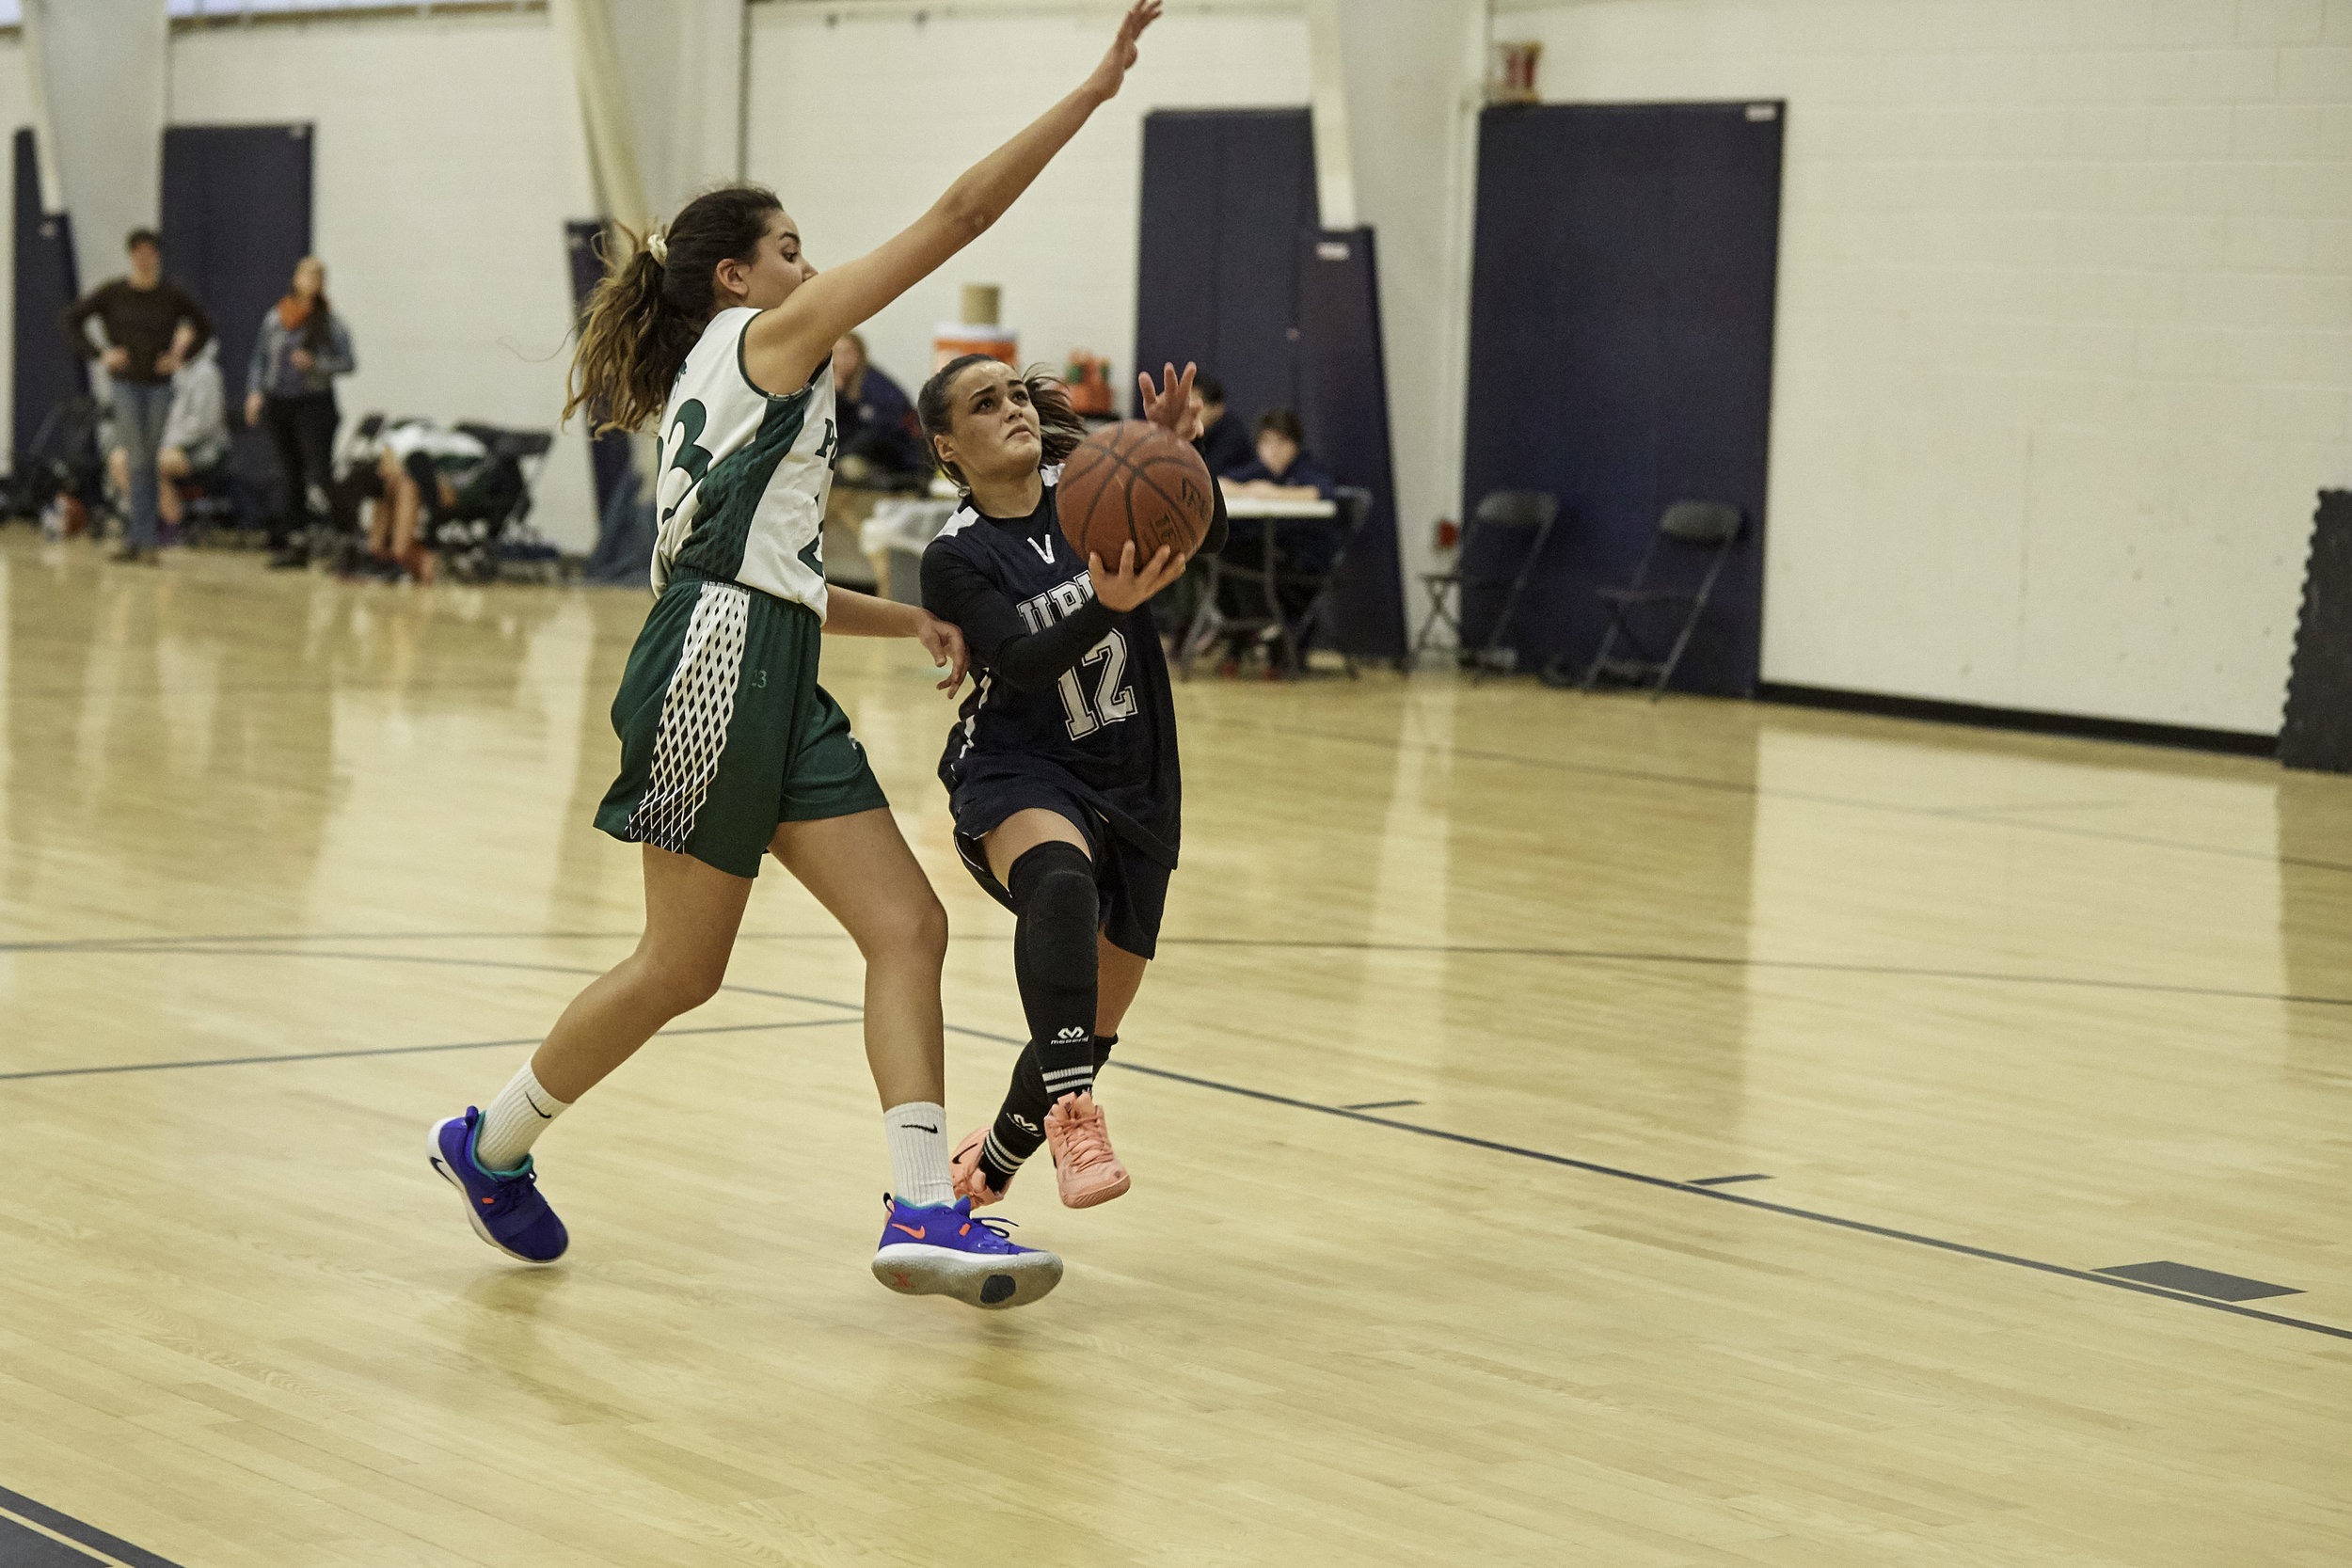 Basketball vs Putney School, February 9, 2019 - 167517.jpg